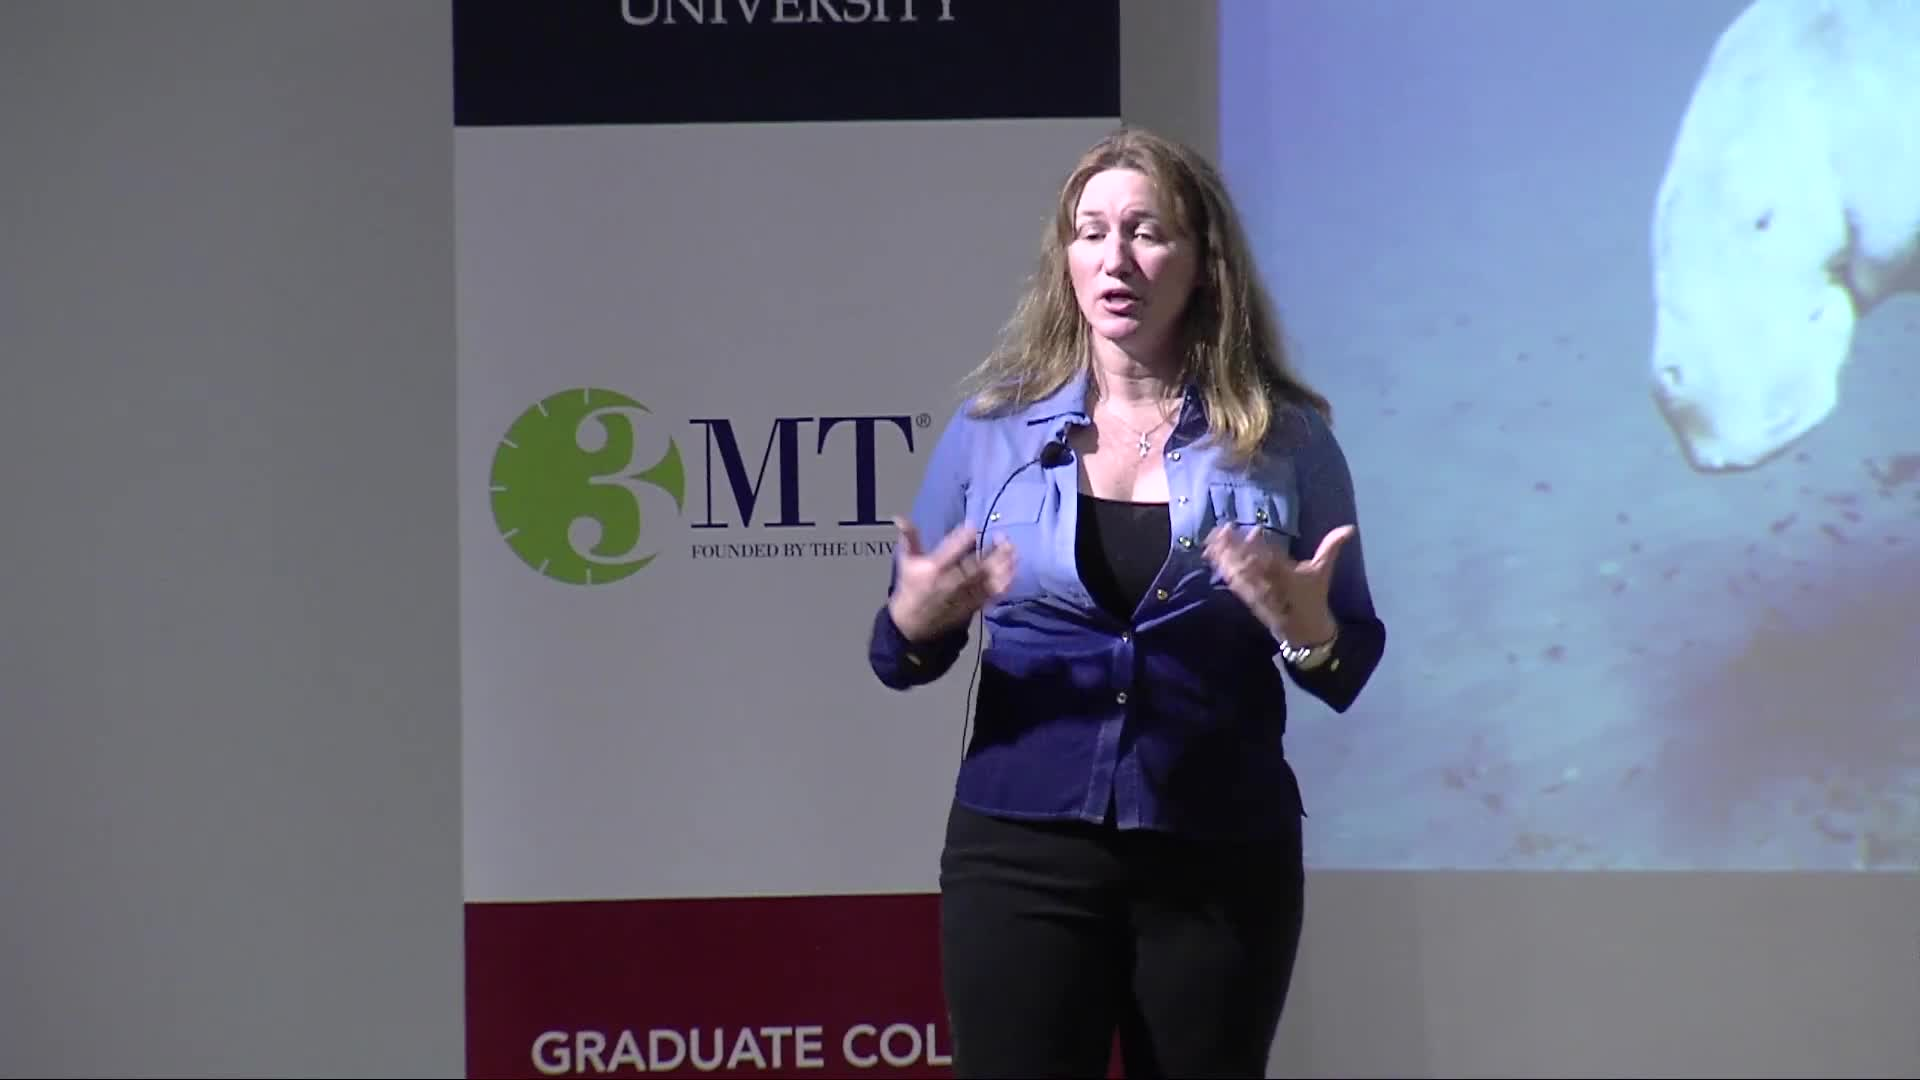 Florida Atlantic University 2018 3MT® Three Minute Thesis Championship - Beth Brady